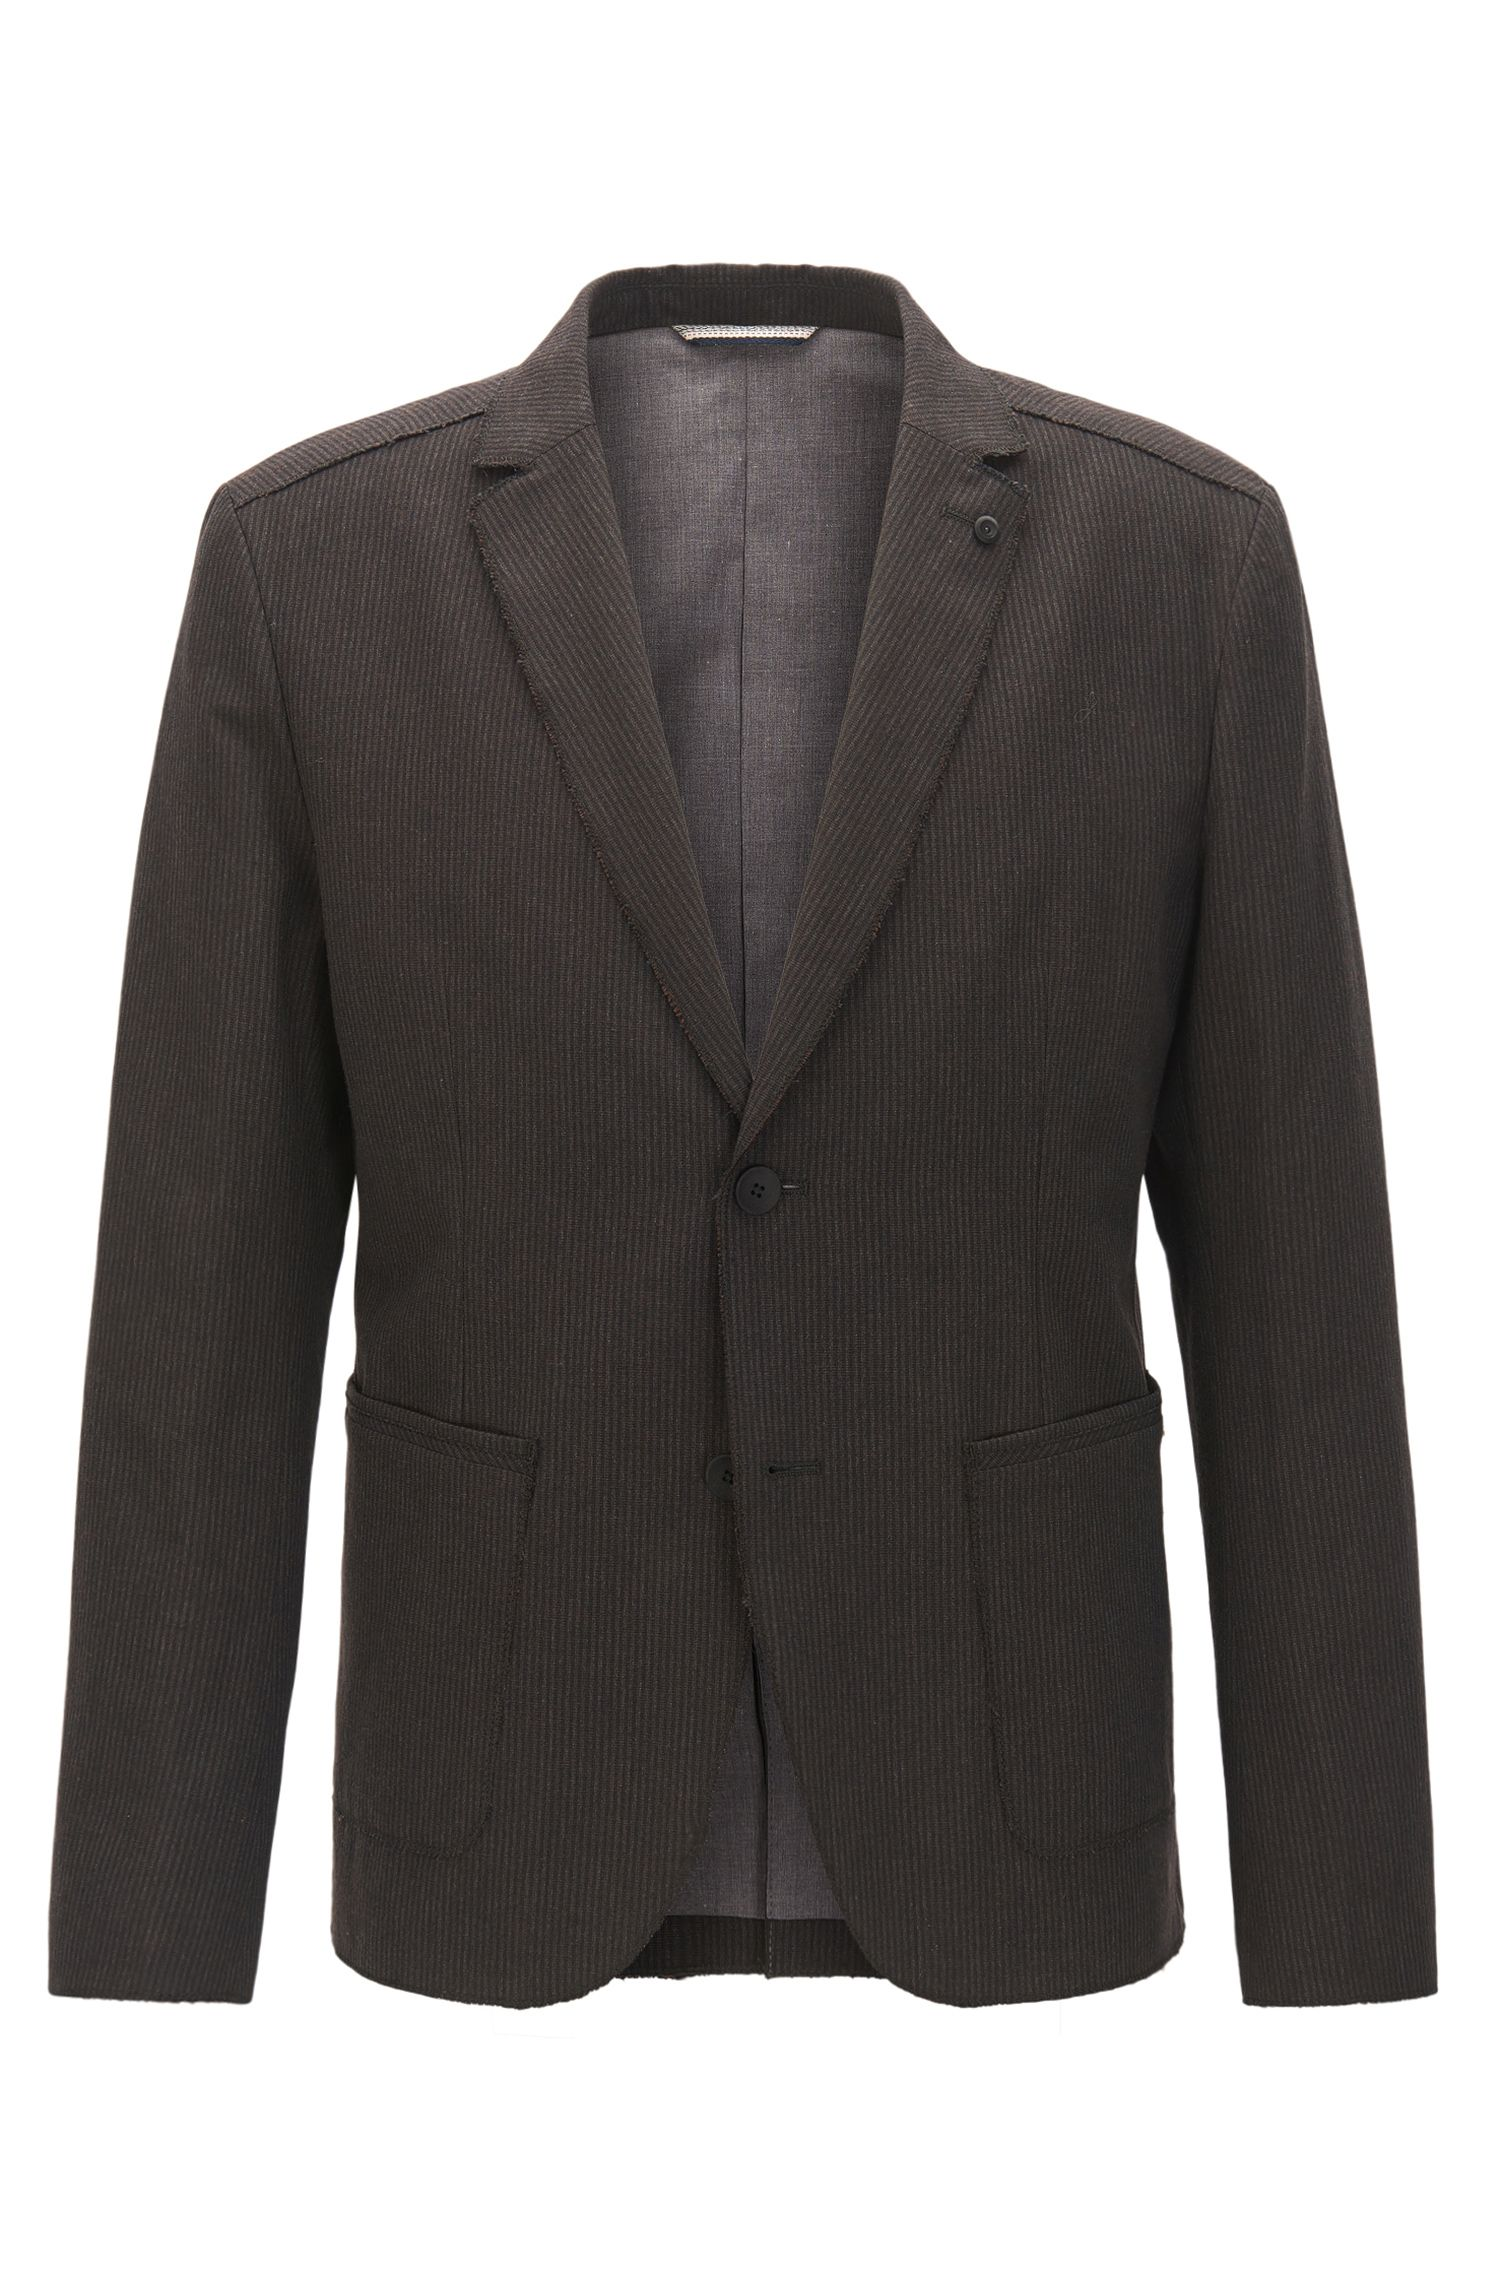 Slim-fit striped jacket in Italian fabric with raw edges